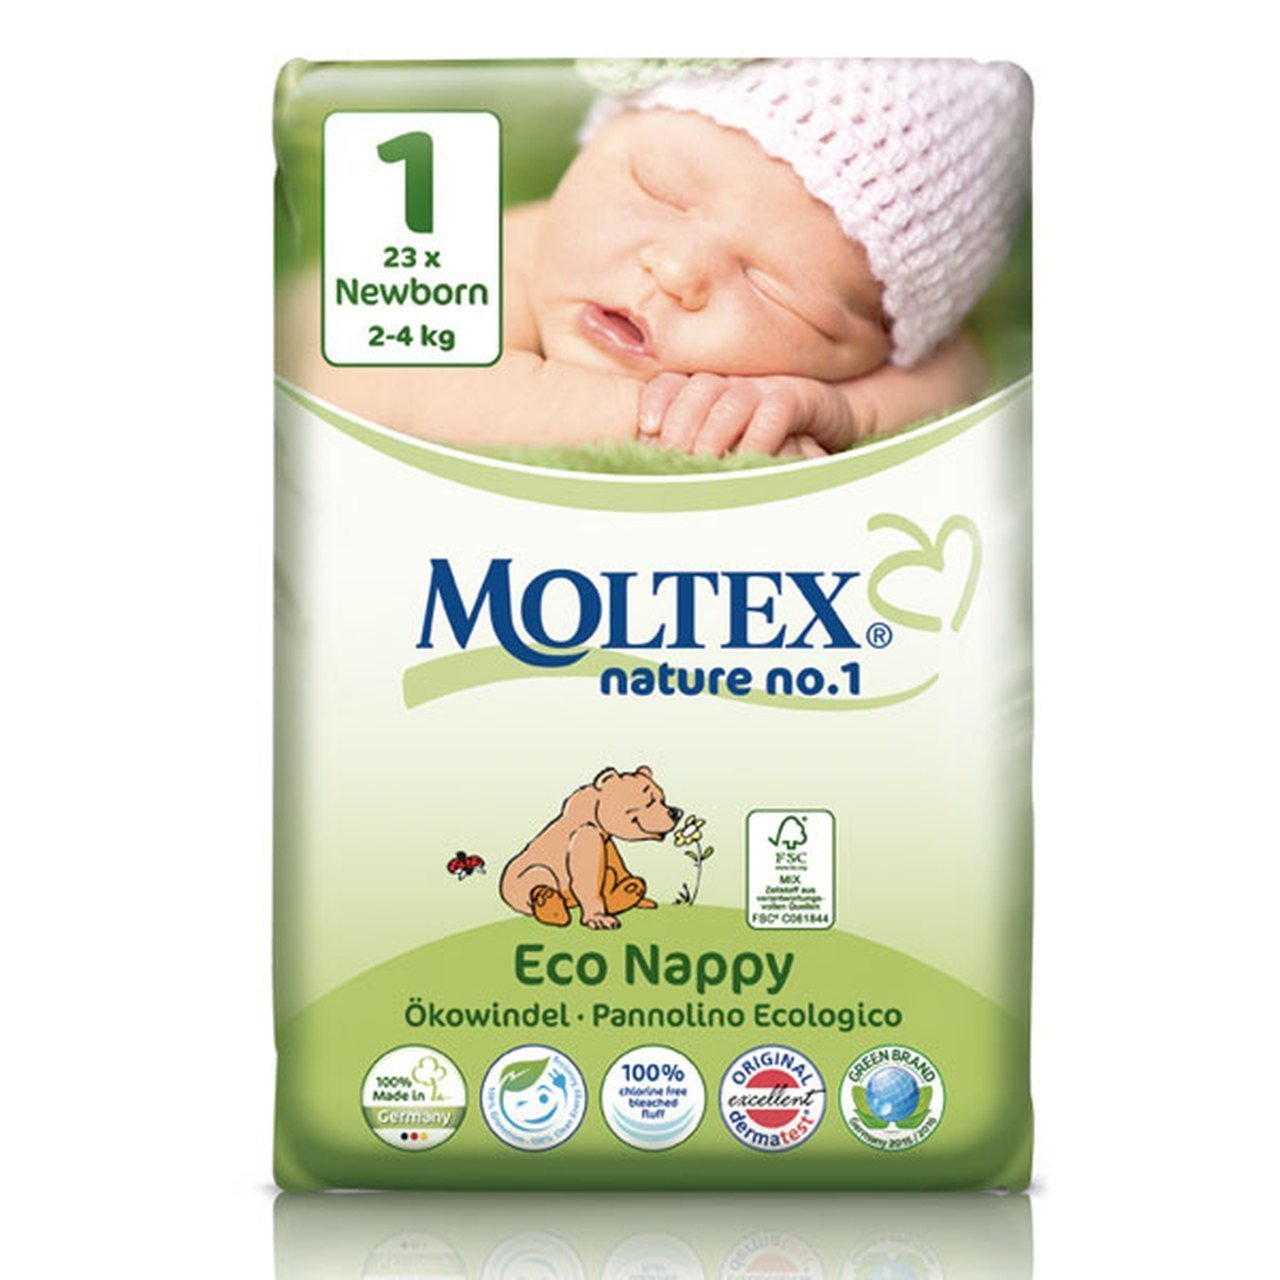 Moltex Eco Nappies Newborn 2-4kgs